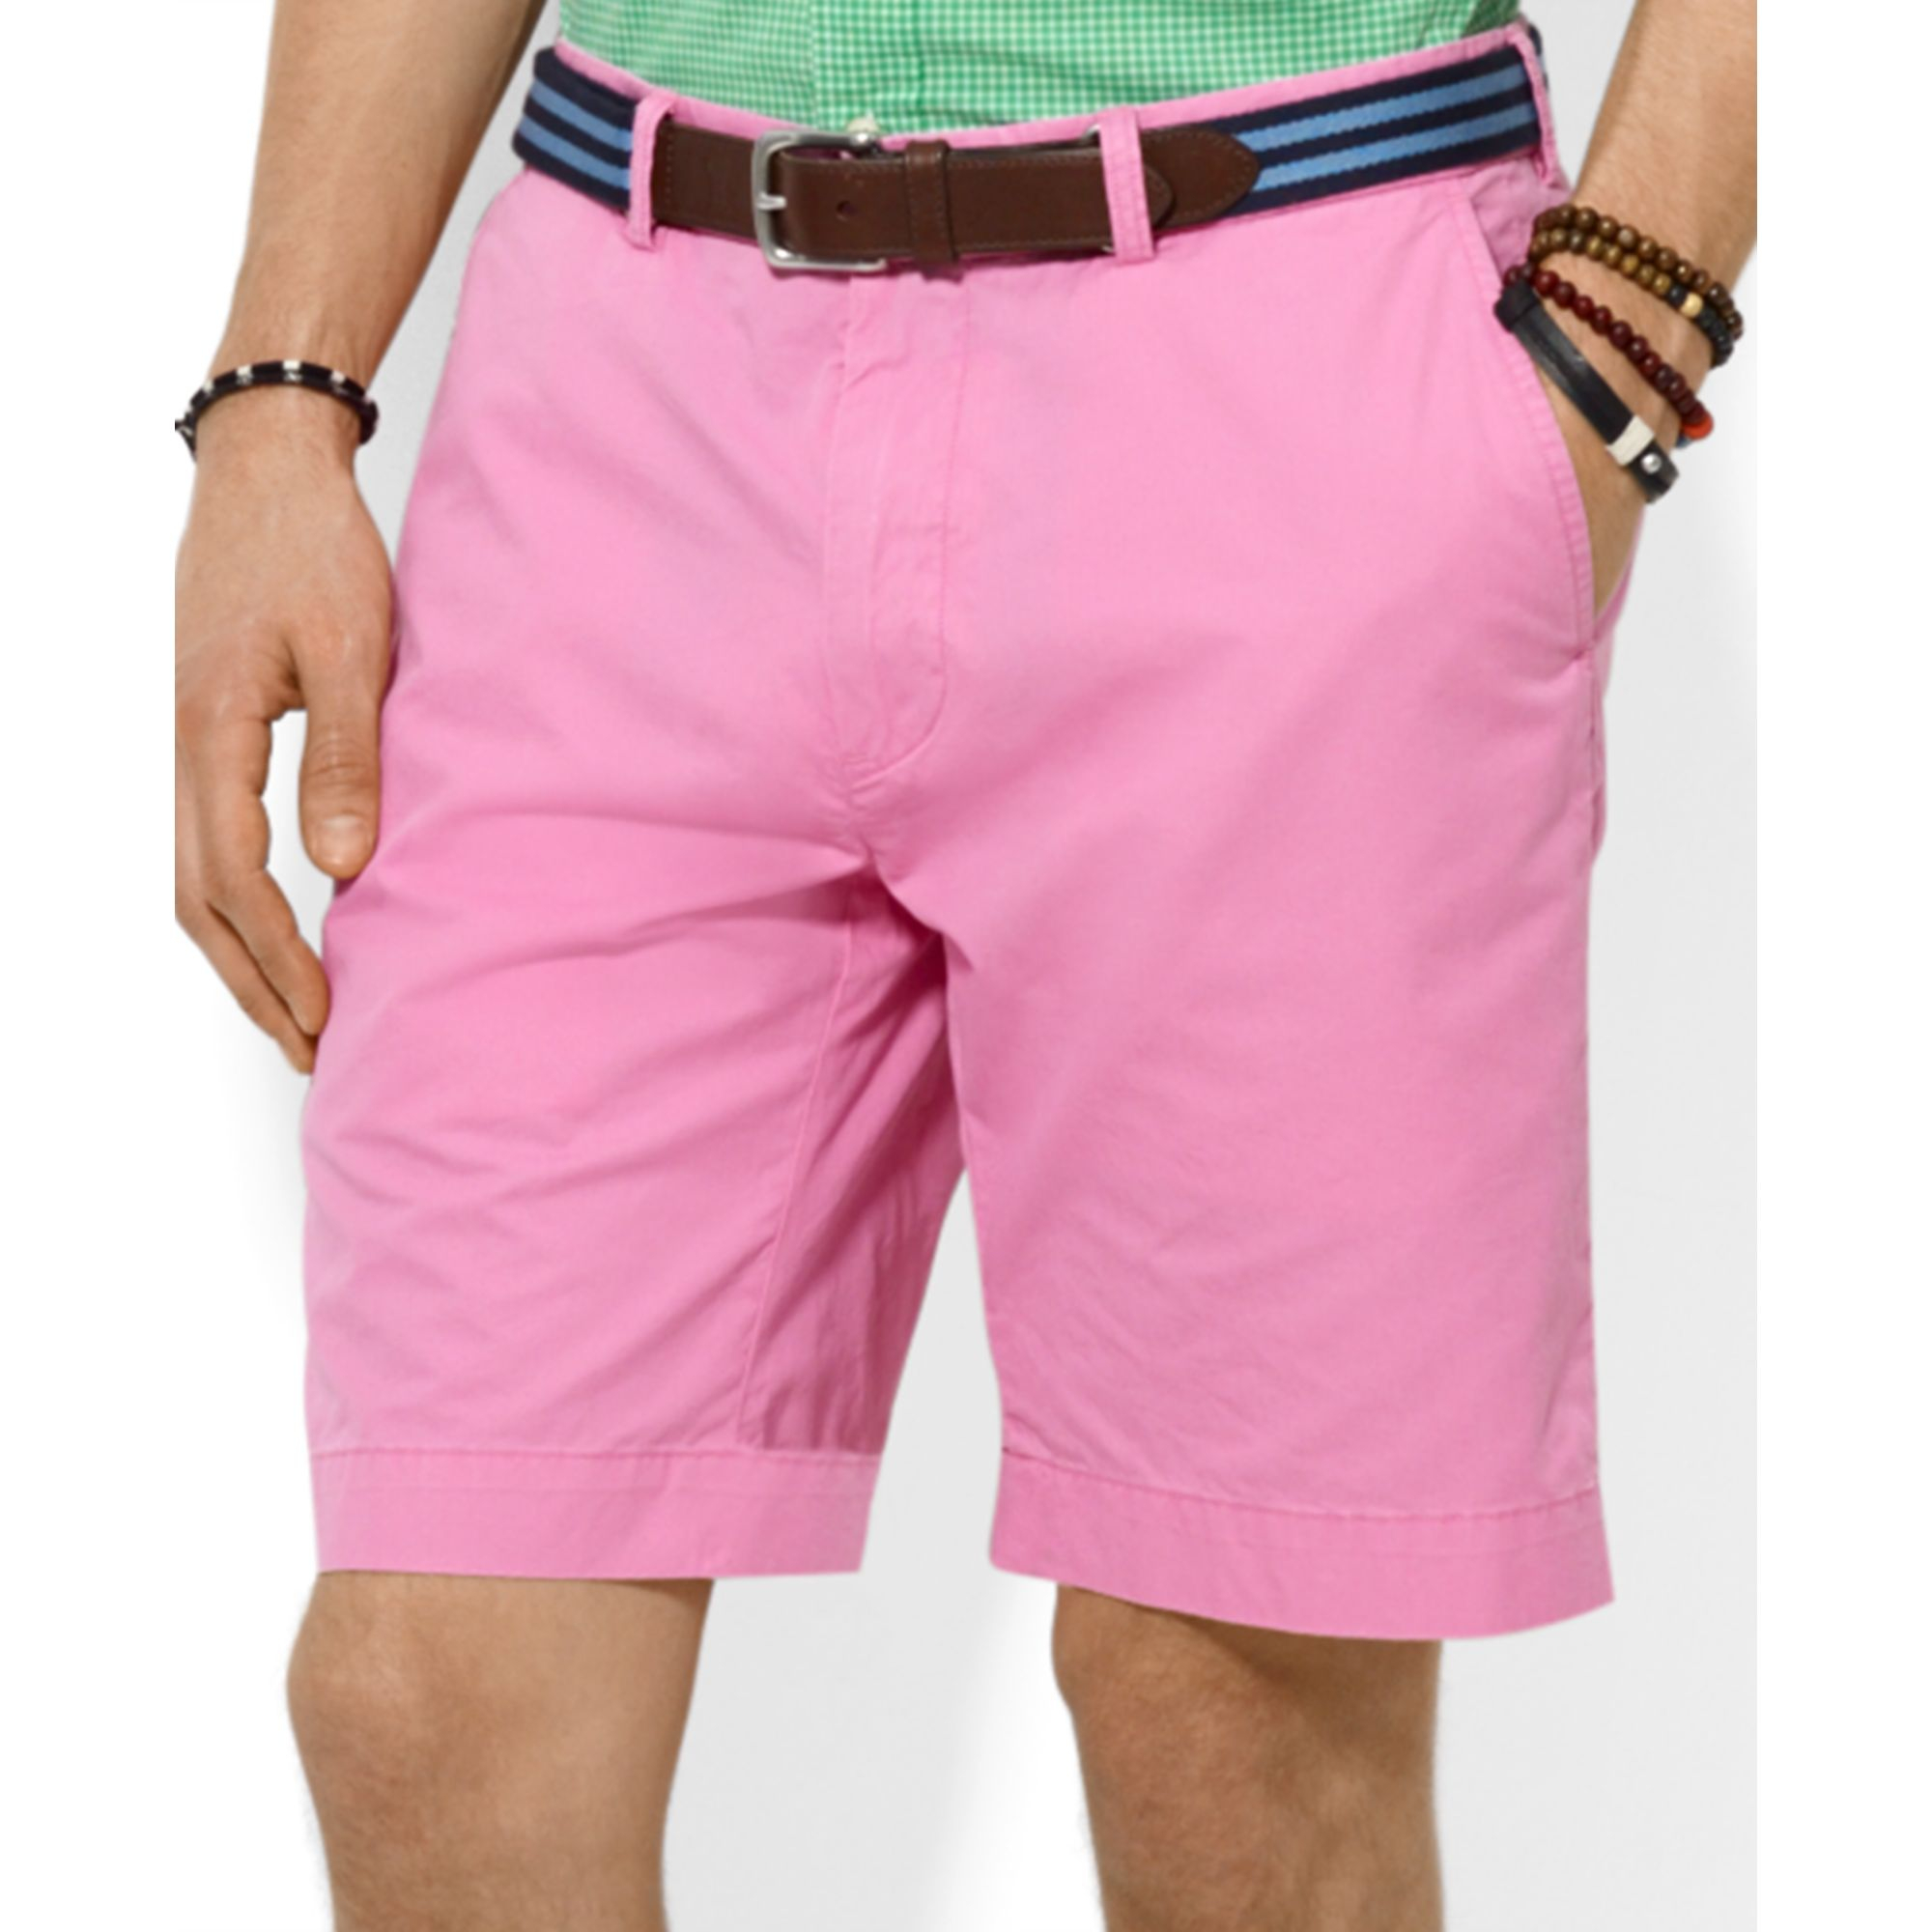 1dff64cd282d1 ... sale lyst ralph lauren polo classicfit lightweight chino shorts in pink  49af5 91715